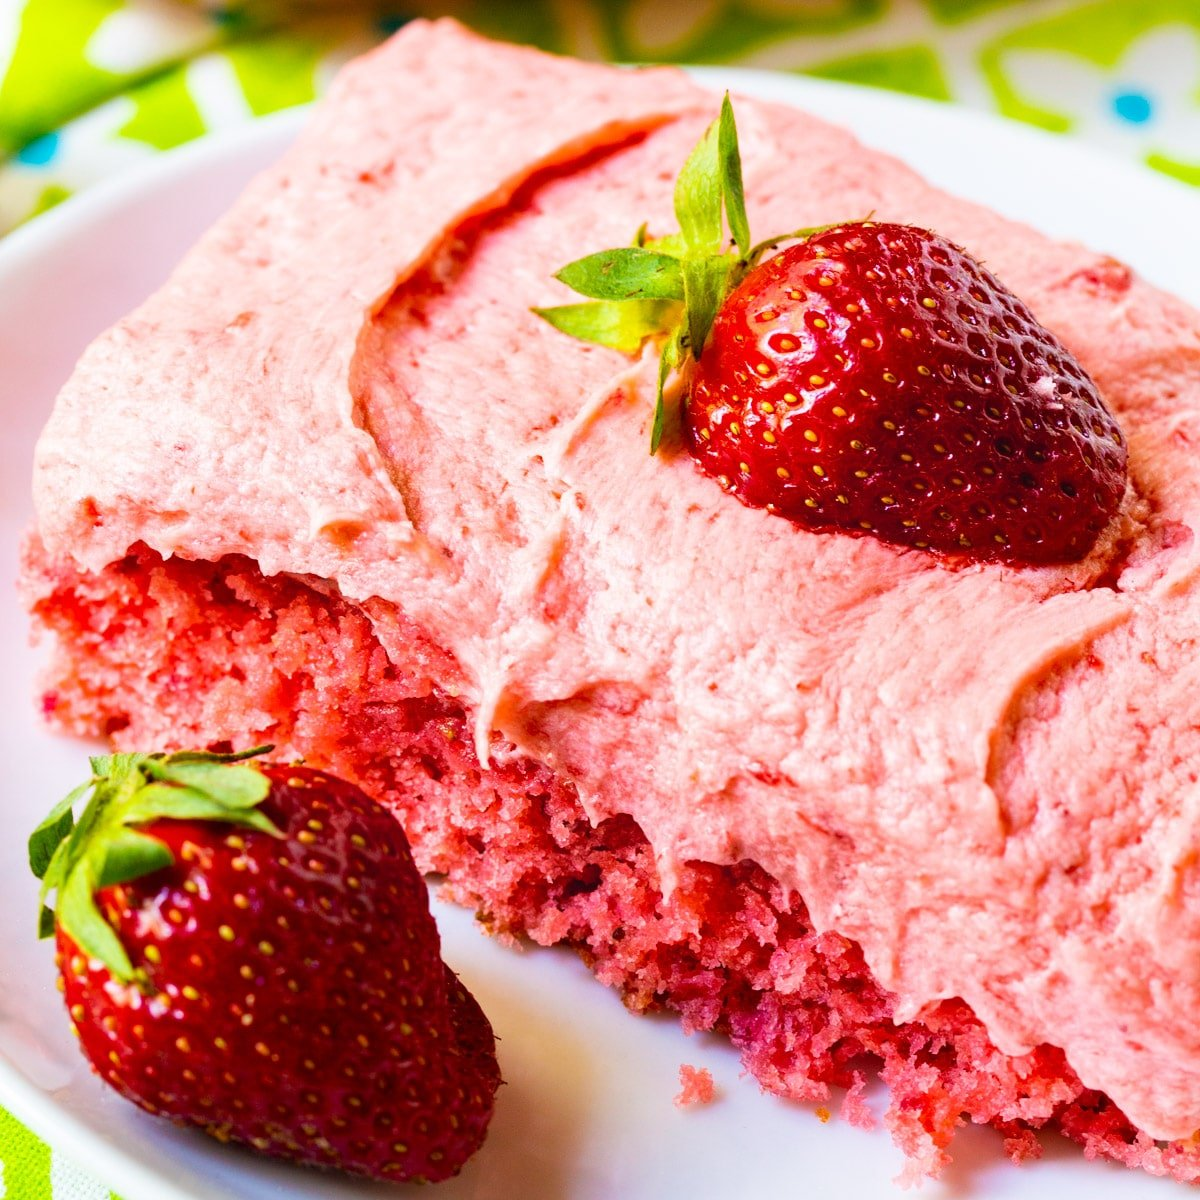 Slice of Strawberry Sheet Cake on a plate with a fresh strawberry.